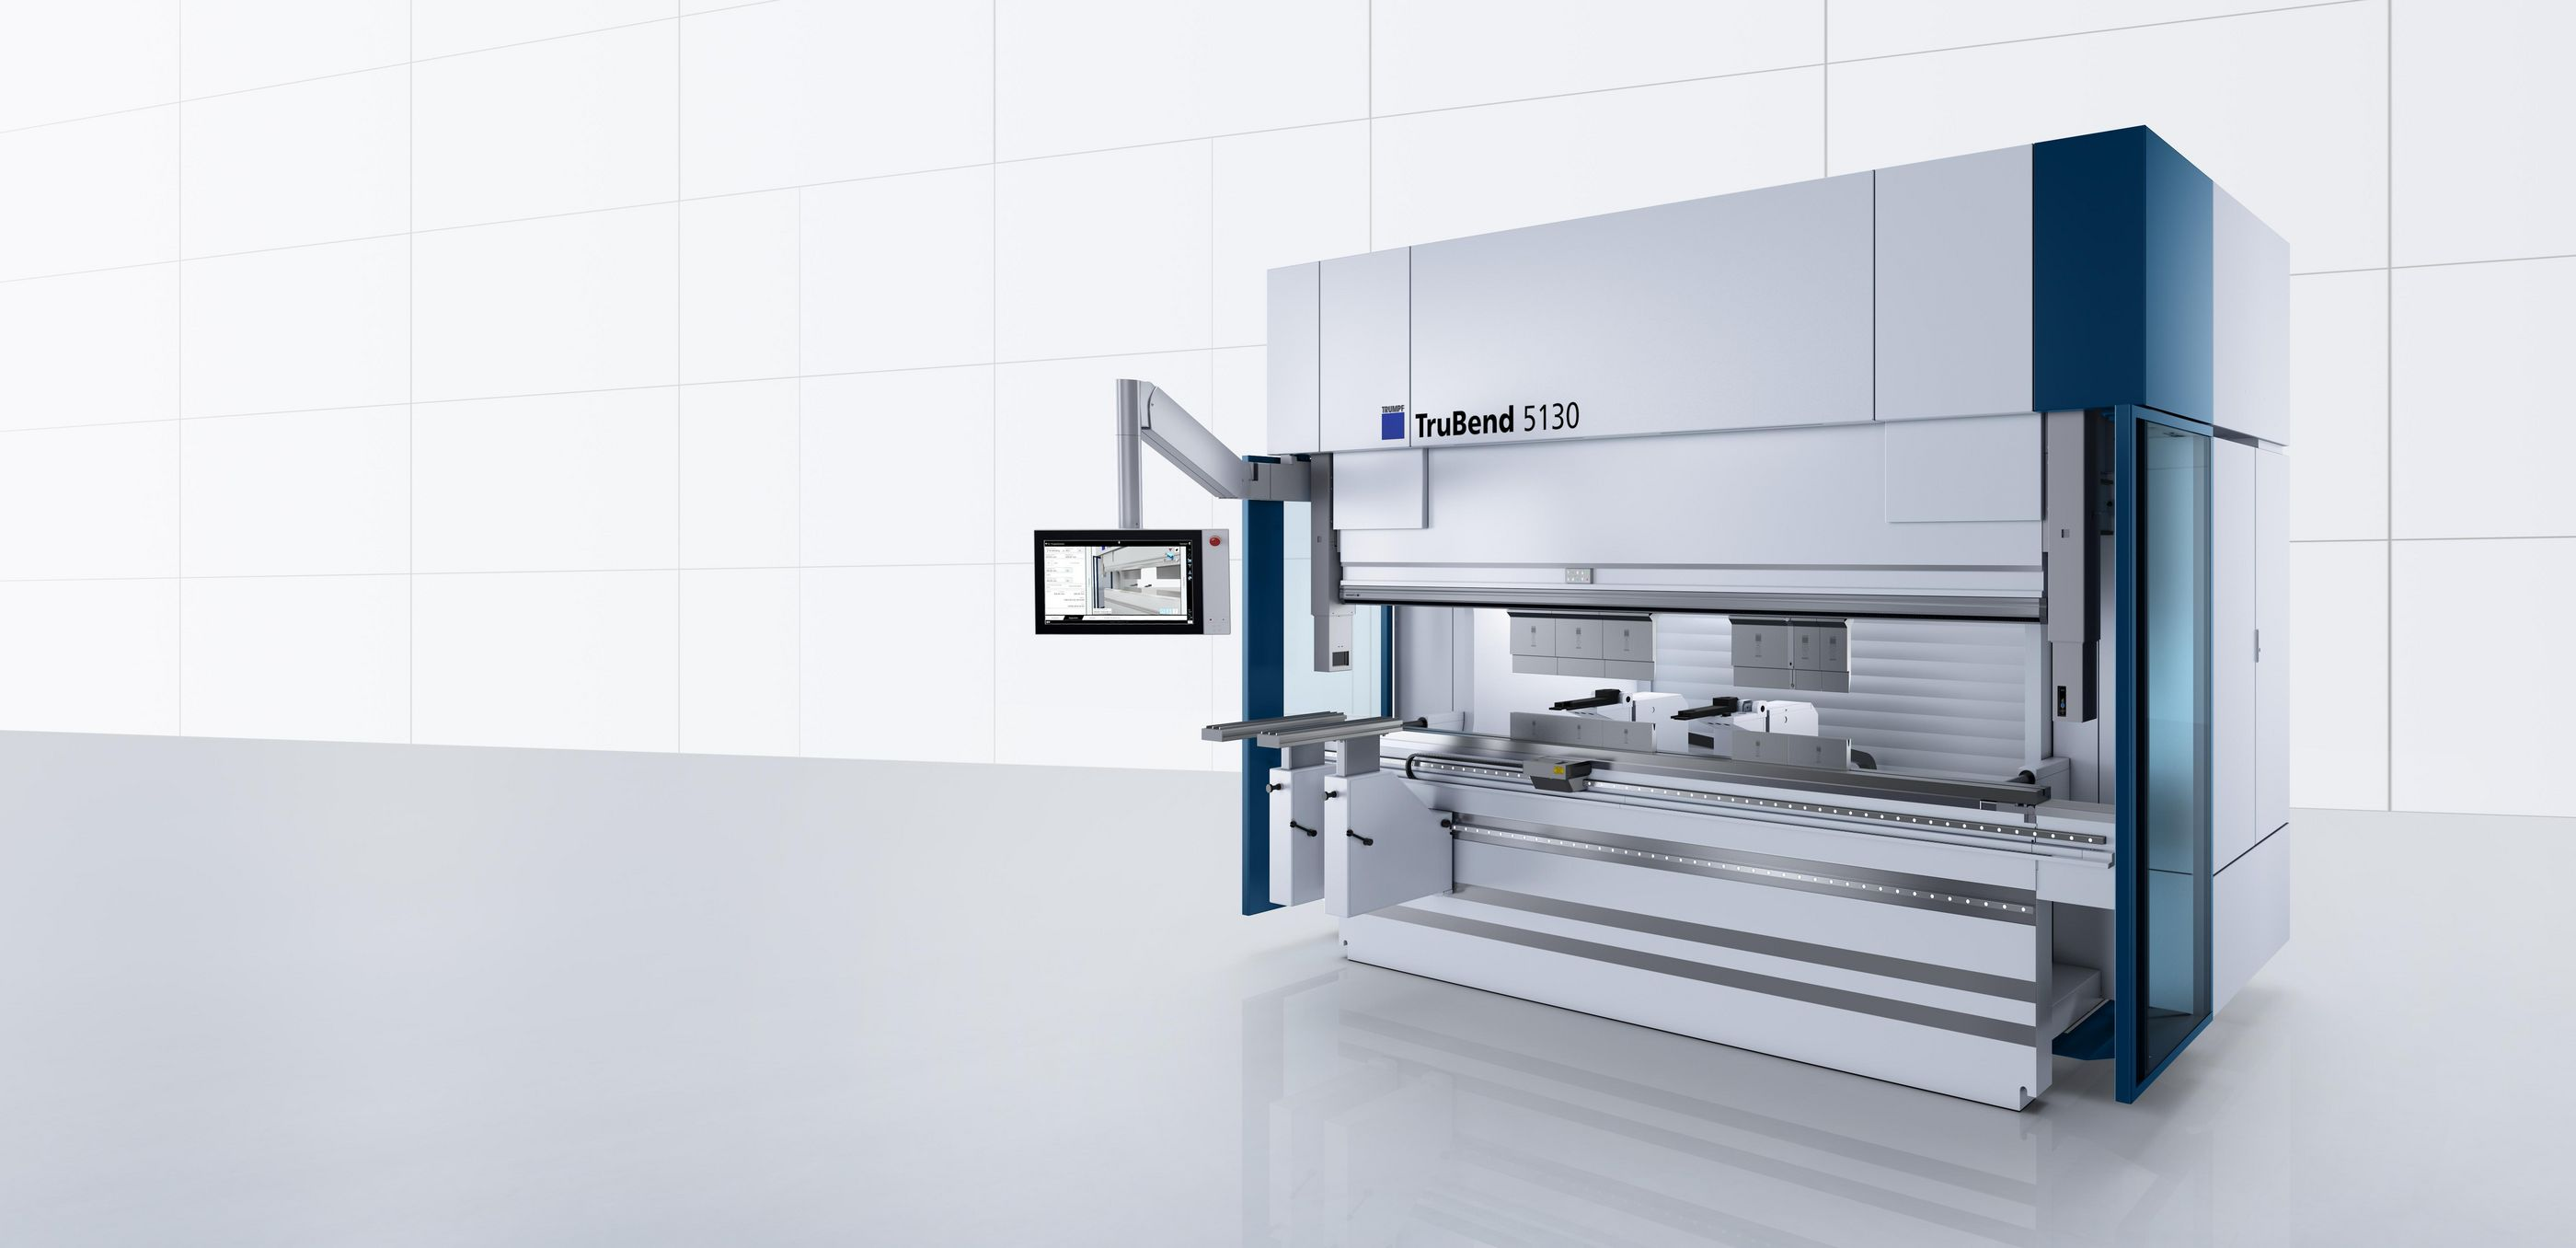 TruBend Series 5000, productive all-round machine